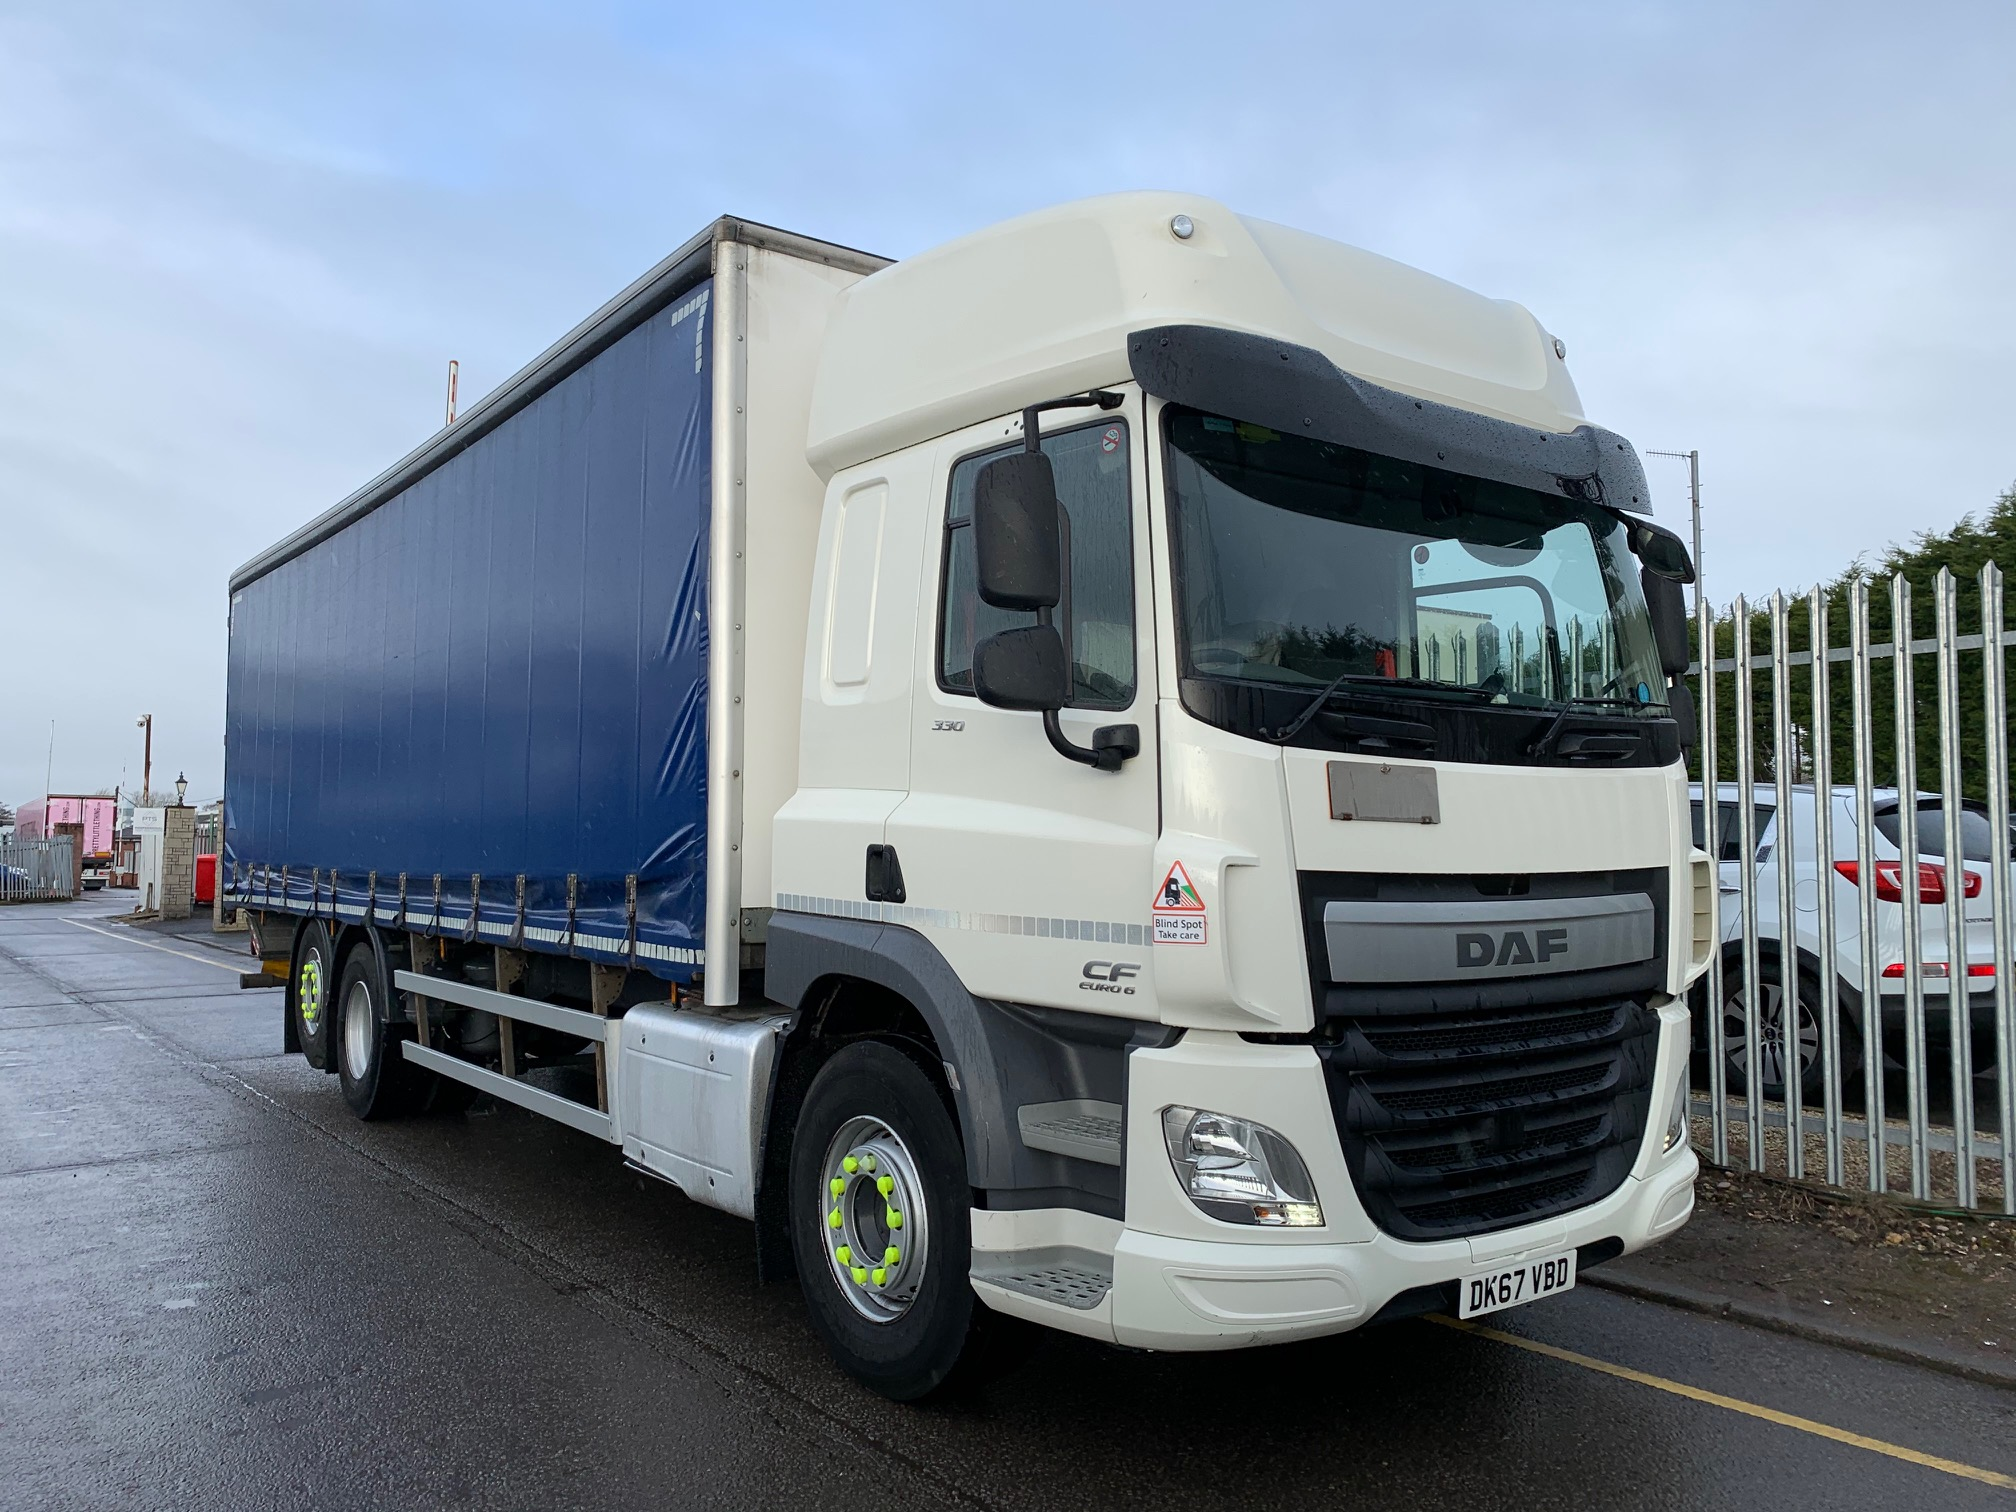 2017 (67) Daf Curtainsider, 26 Tonne, Anteo Tuckunder Tailift (1500KG Capacity), 30 Foot Body, Euro 6, 330bhp, AS Tronic Automatic Gearbox, Low Mileage, Choice & Warranty Available.